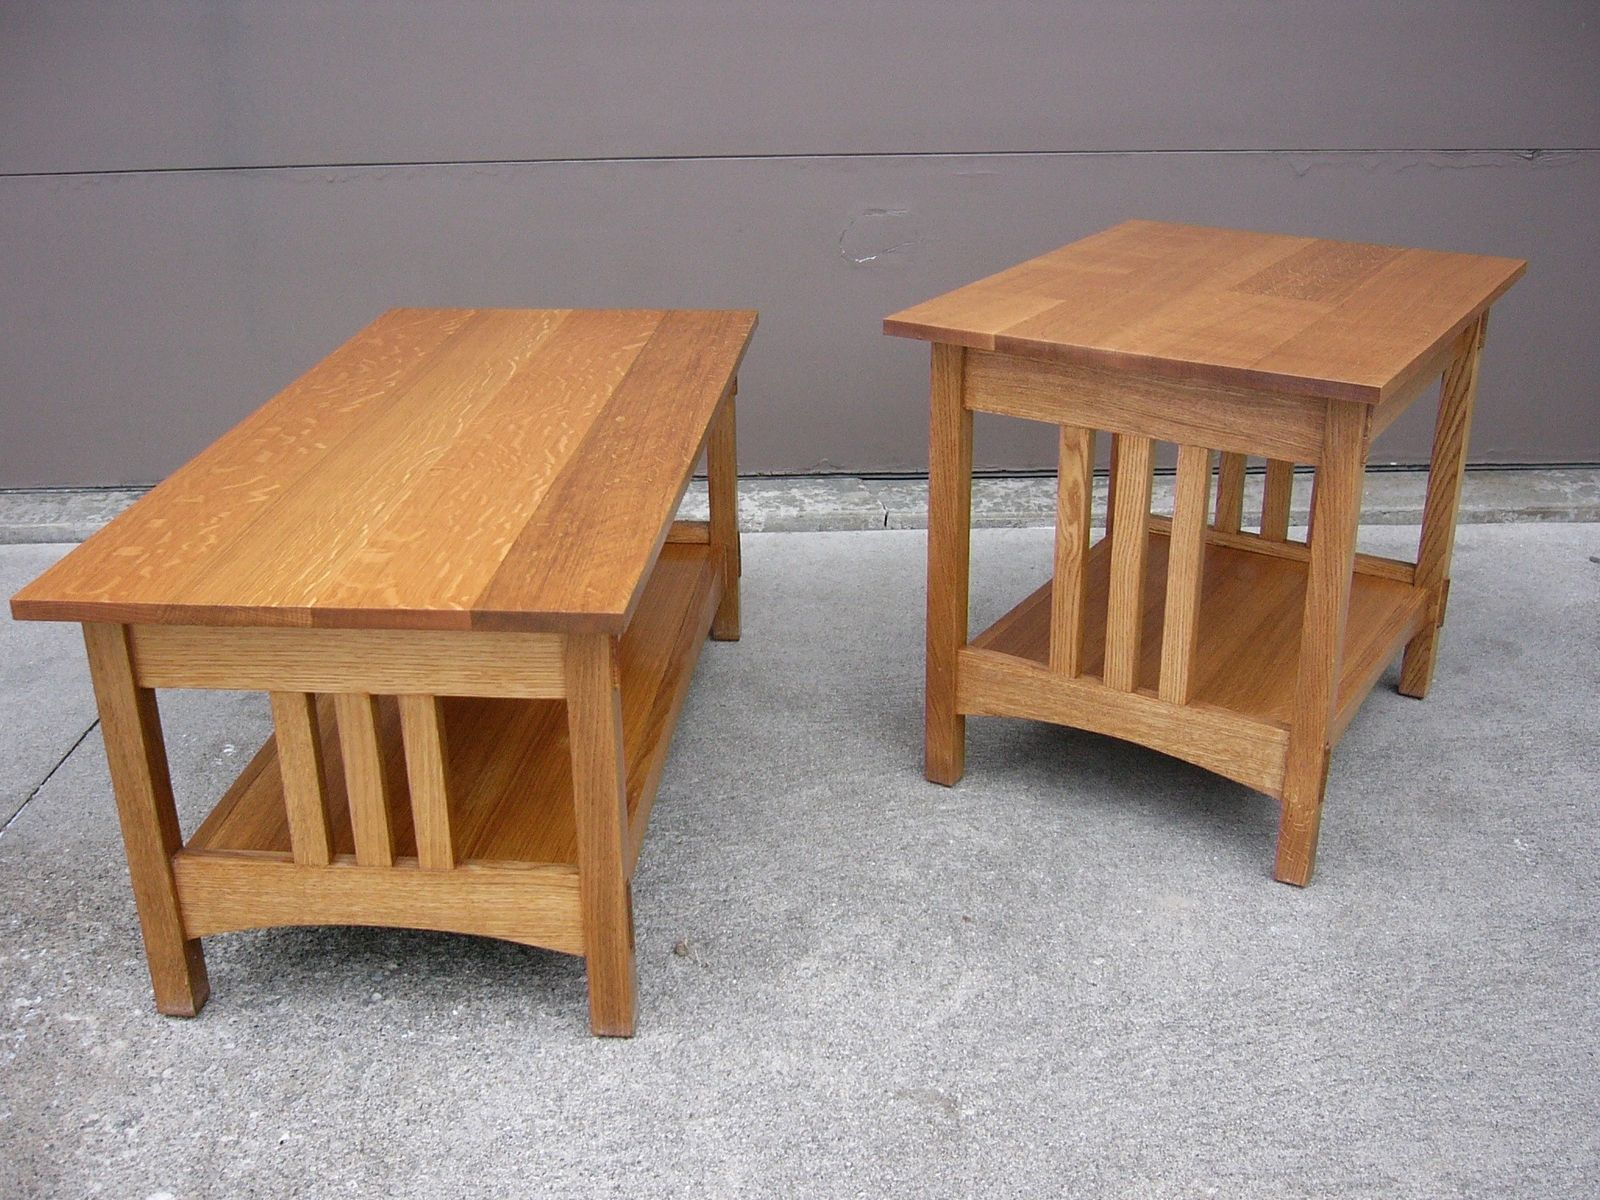 Quartersawn Oak Mission Style Coffee Table And End Table For The Home Pinterest